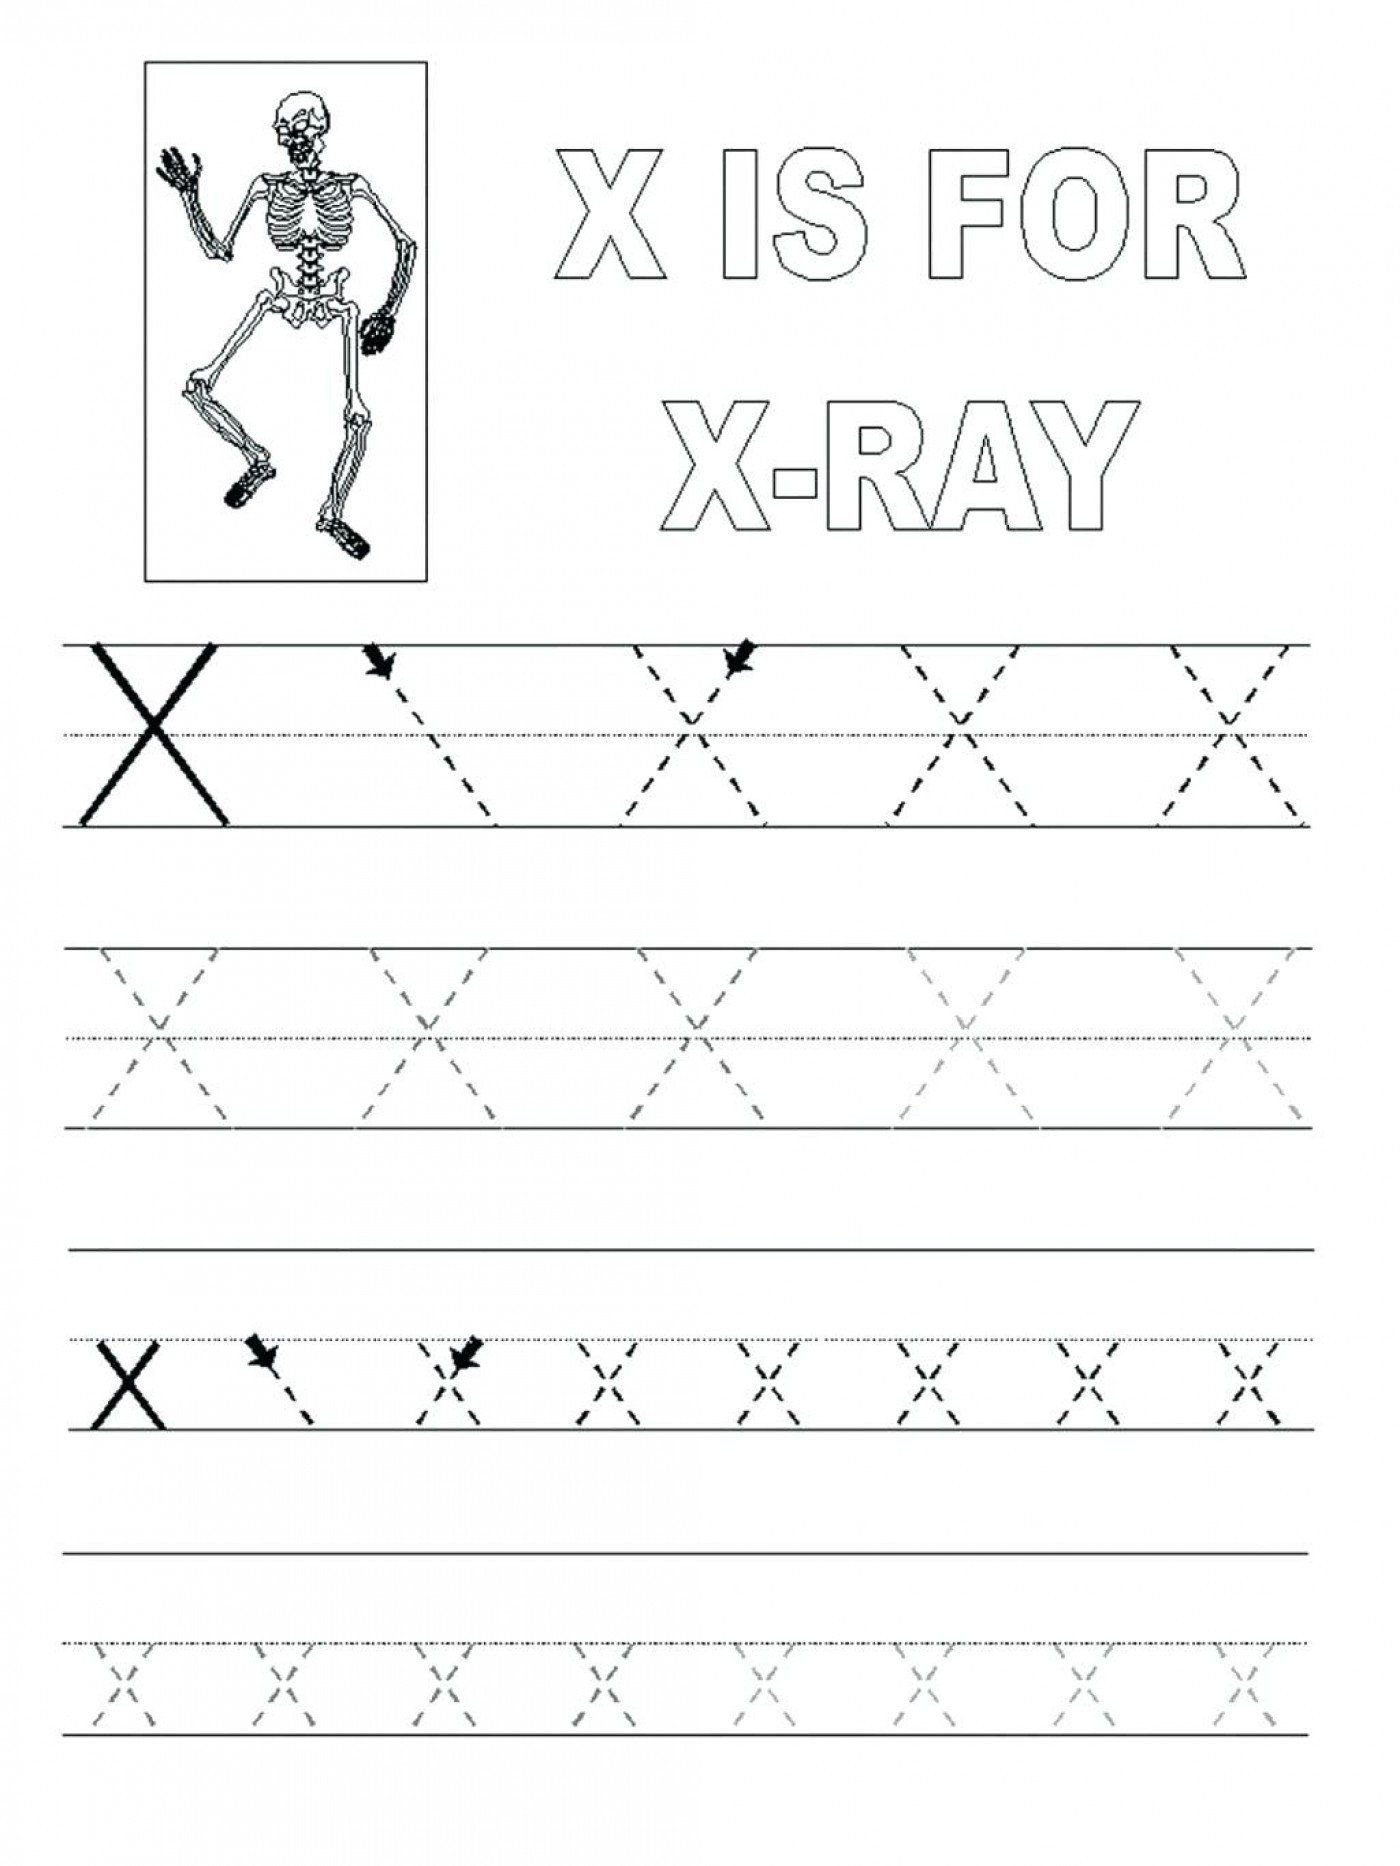 Measurement Worksheets 5th Grade Pin Printable Alphabet Worksheets Handwriting